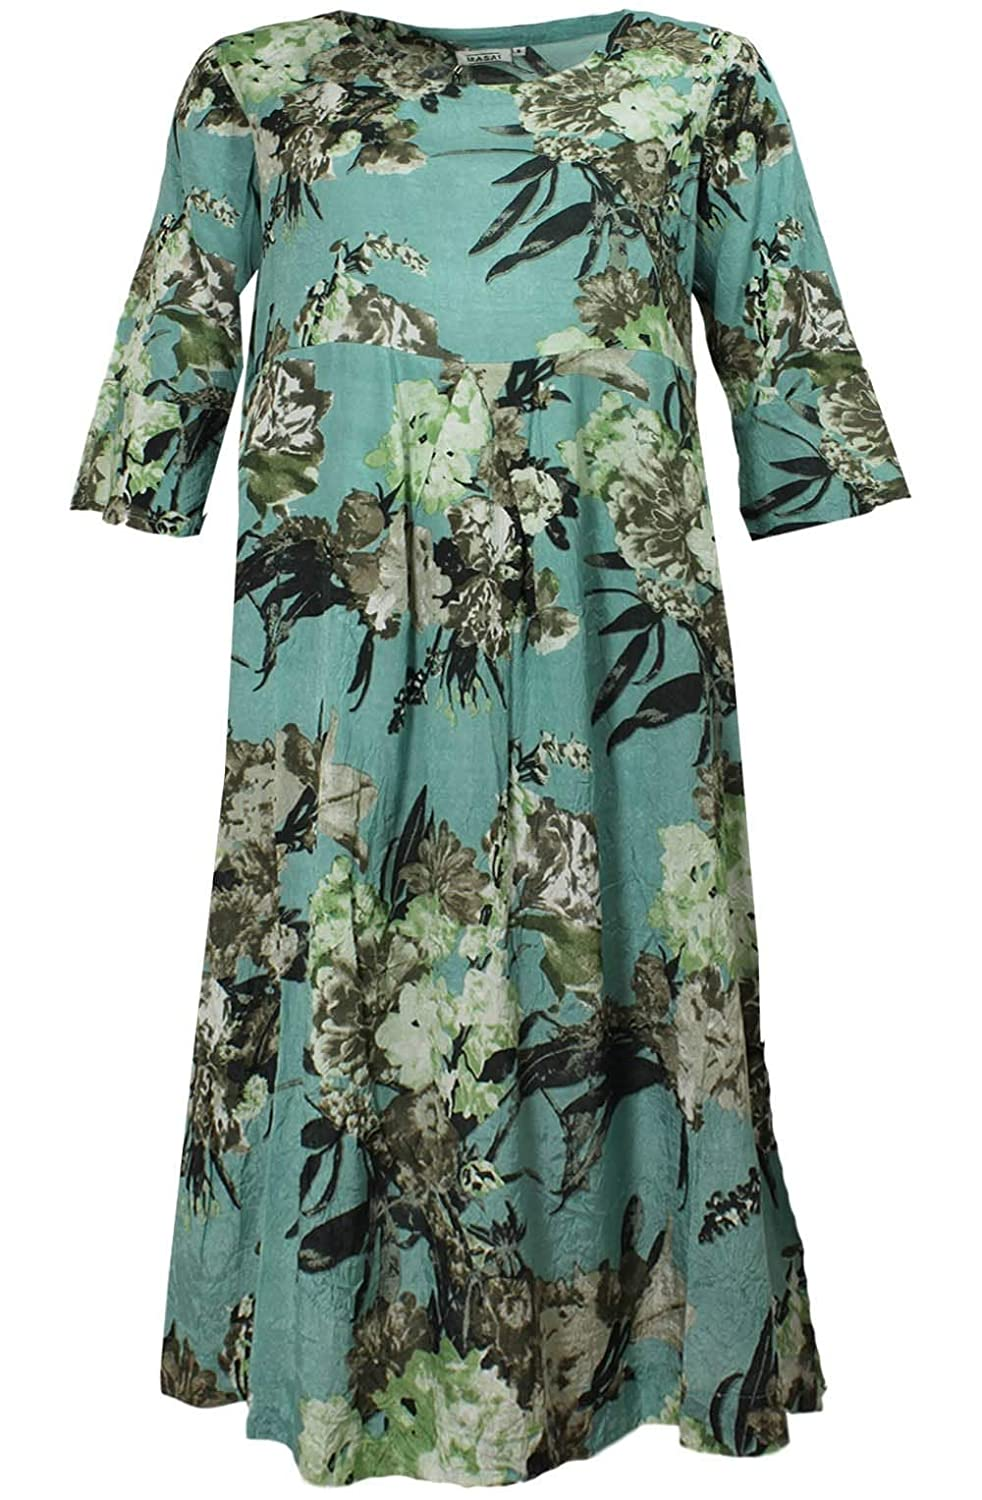 dfc6dbc9269 Masai Clothing Nunni Floral Dress M Mineral: Amazon.co.uk: Clothing